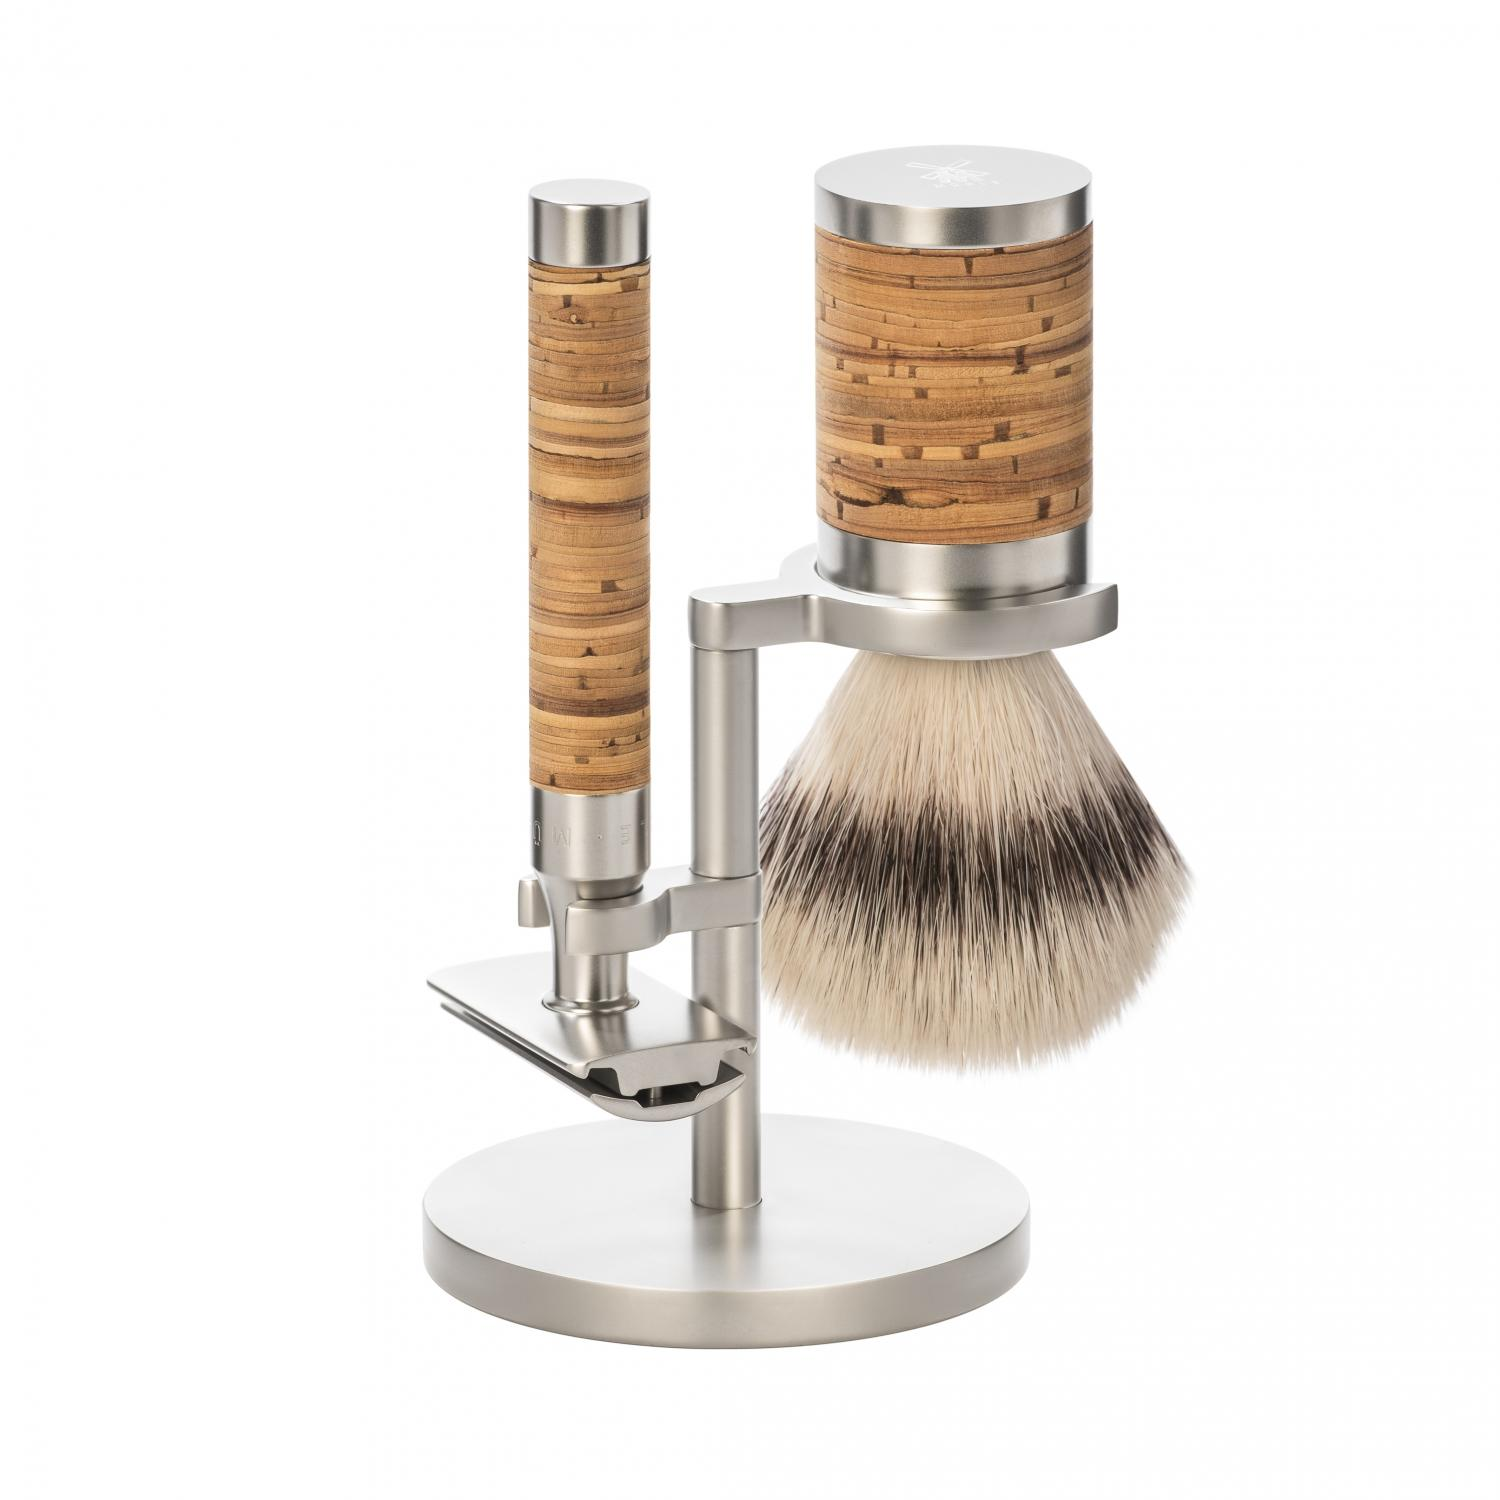 MÜHLE ROCCA Birch Bark Stainless Steel Silvertip Fibre Set